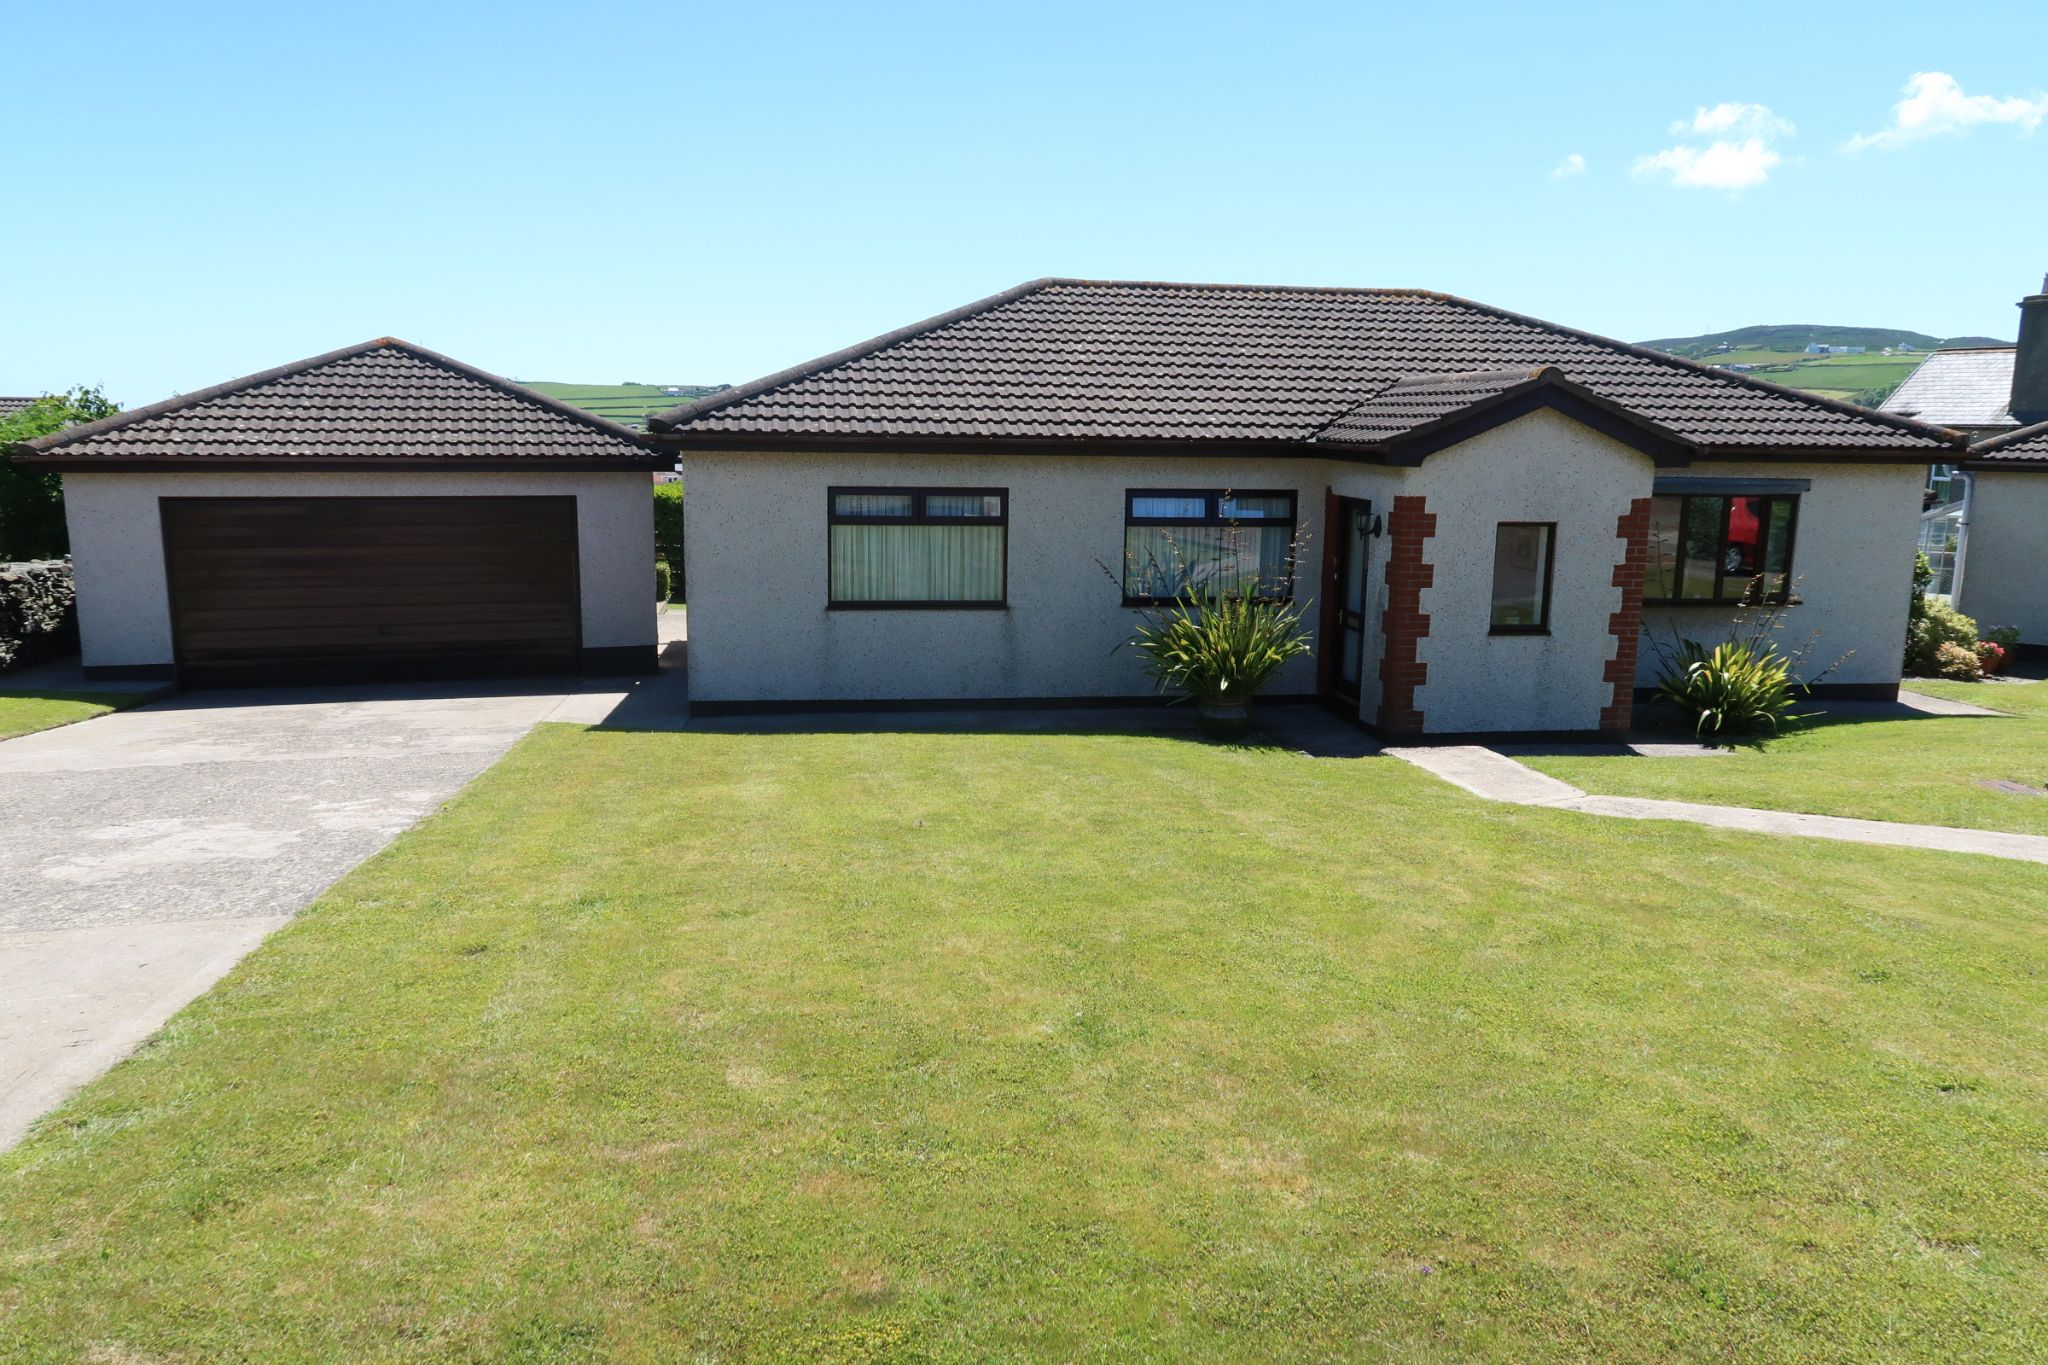 3 bedroom detached bungalow Sold in Port Erin - Photograph 1